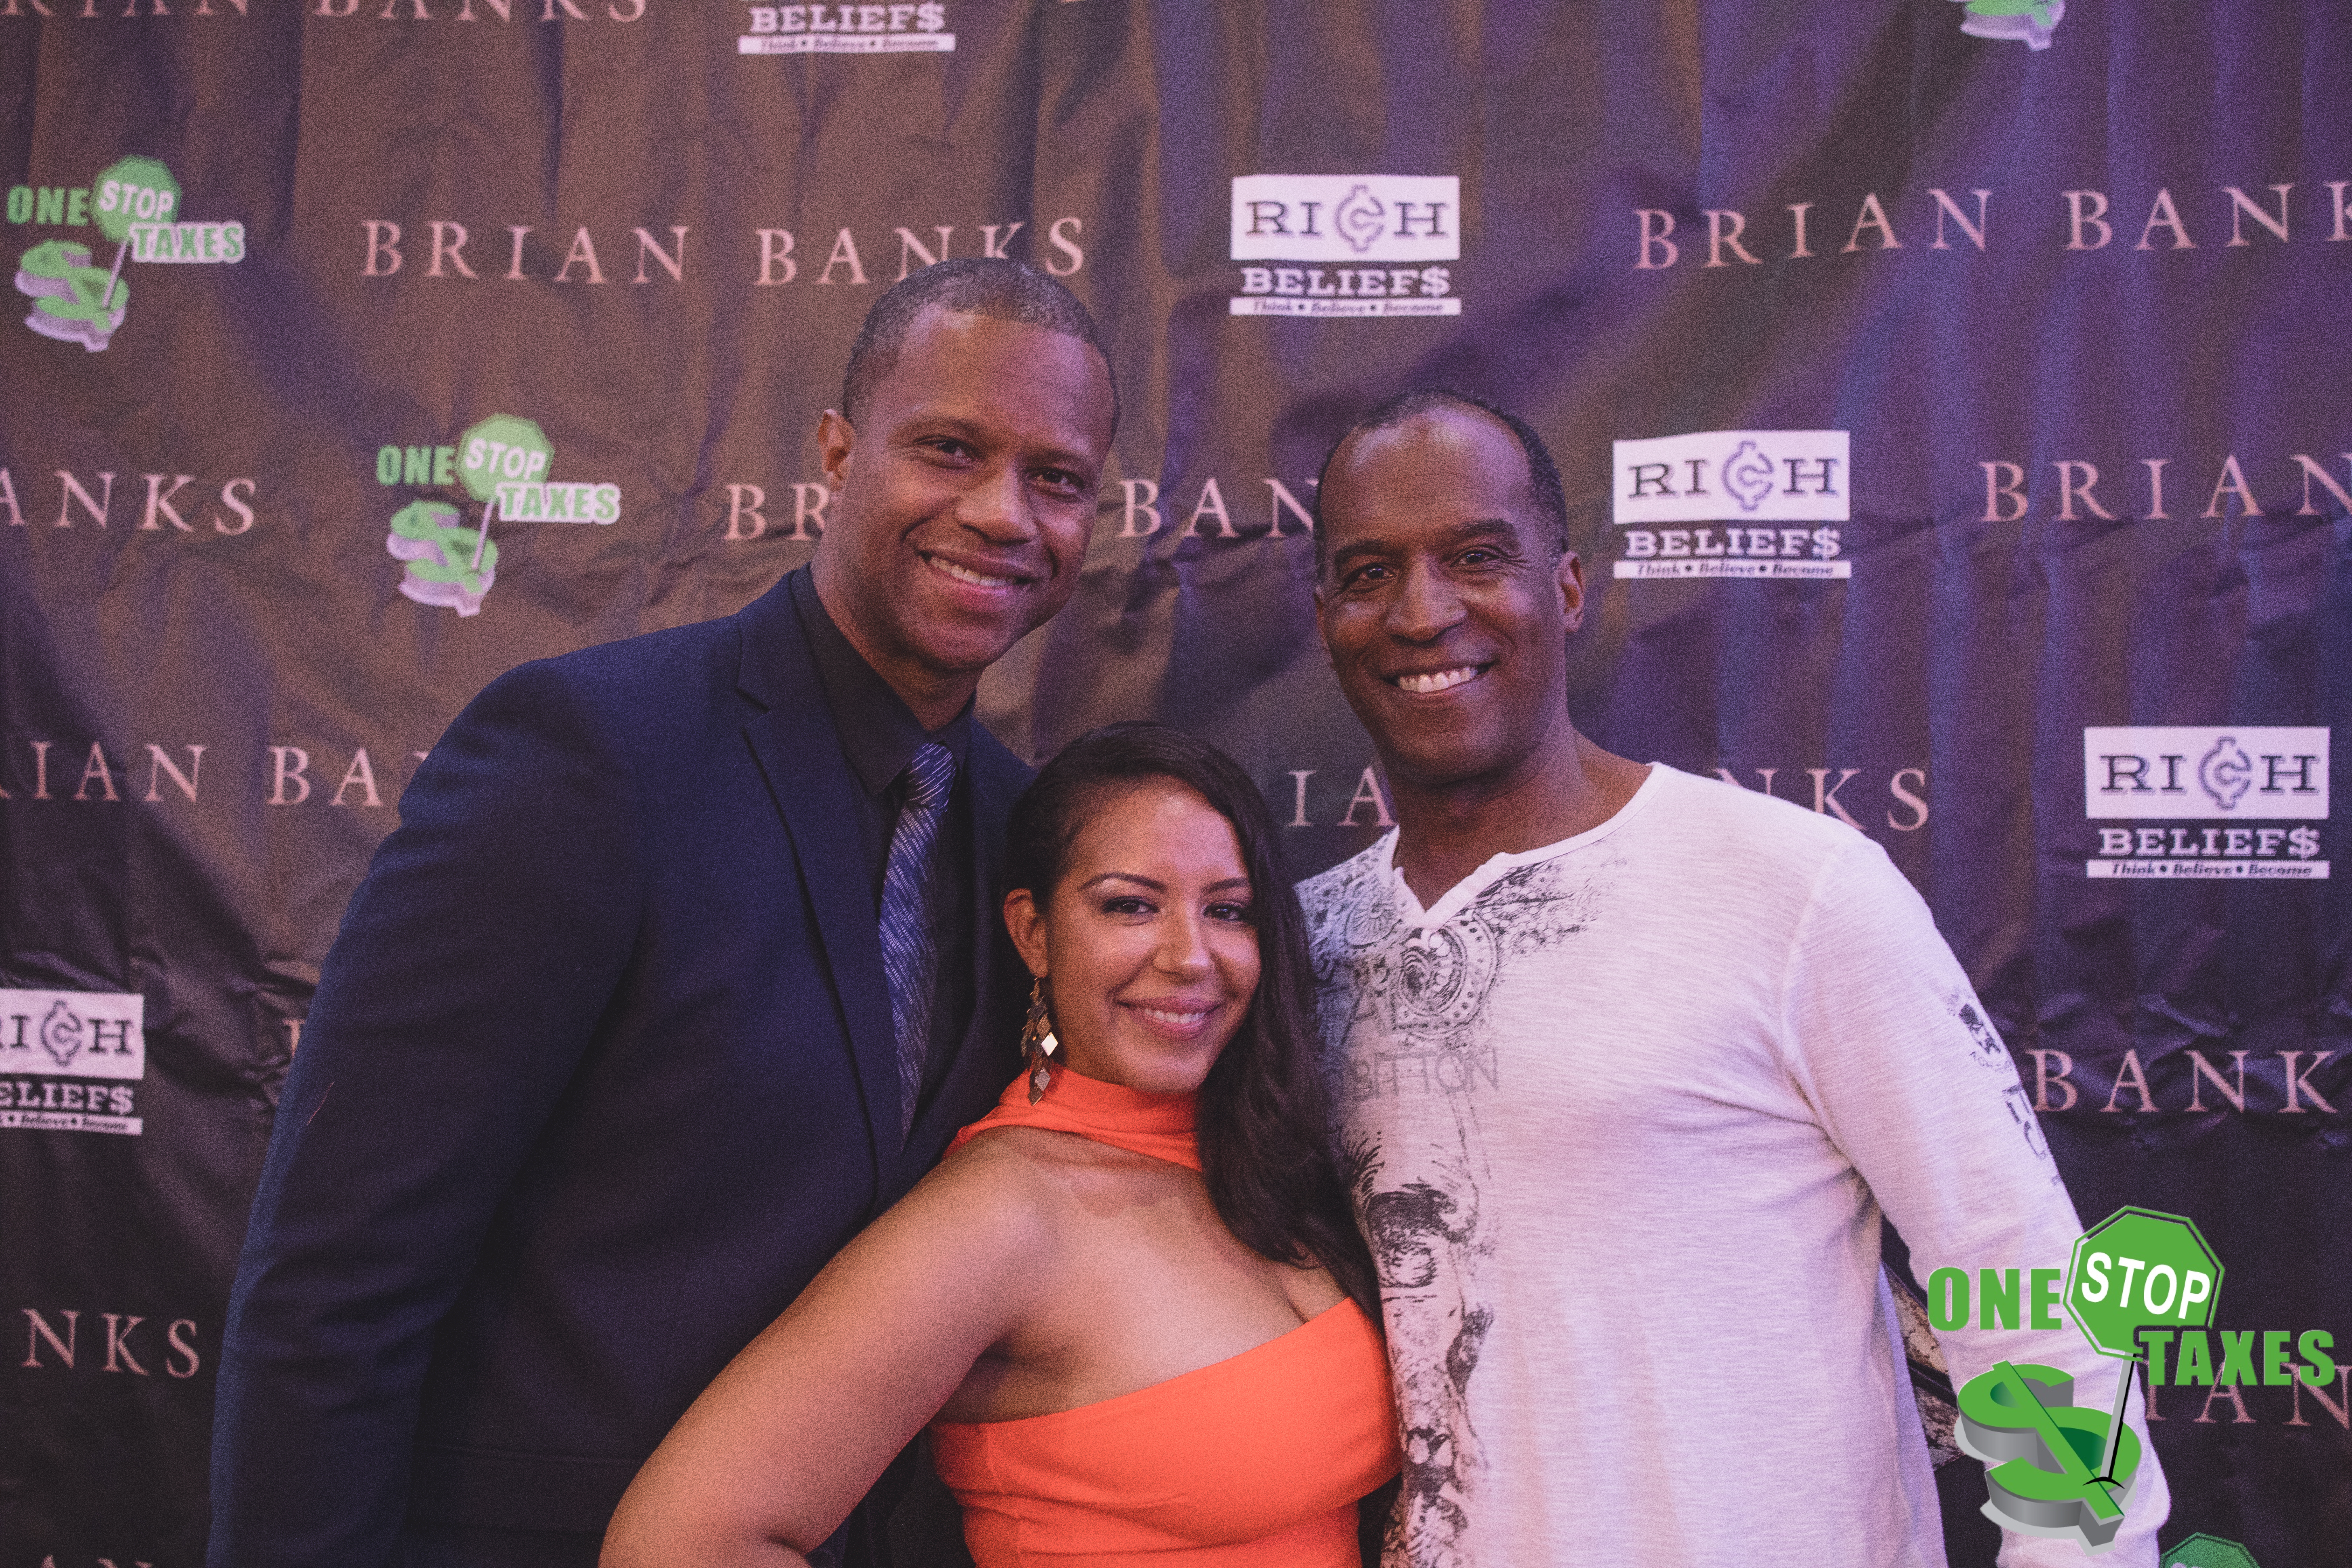 """ONE STOP Taxes Host the Official Red Carpet Memphis Premiere of """"Brian Banks"""" Movie"""